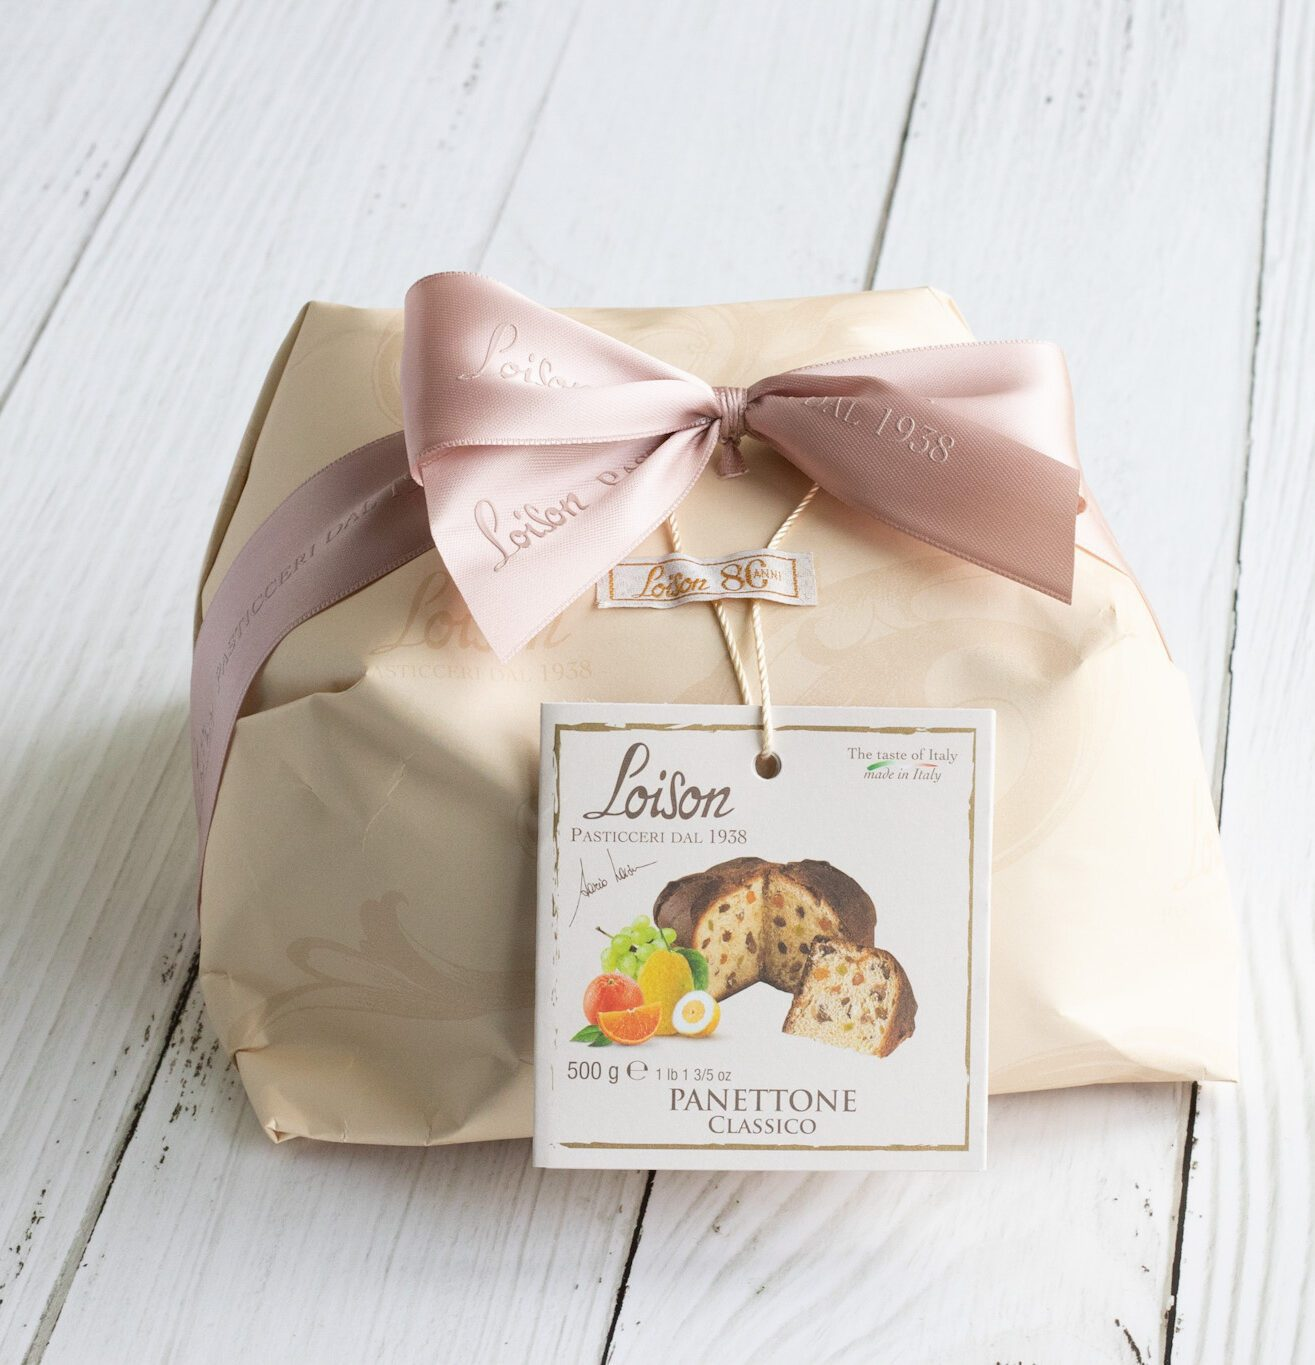 Loison Classic Panettone